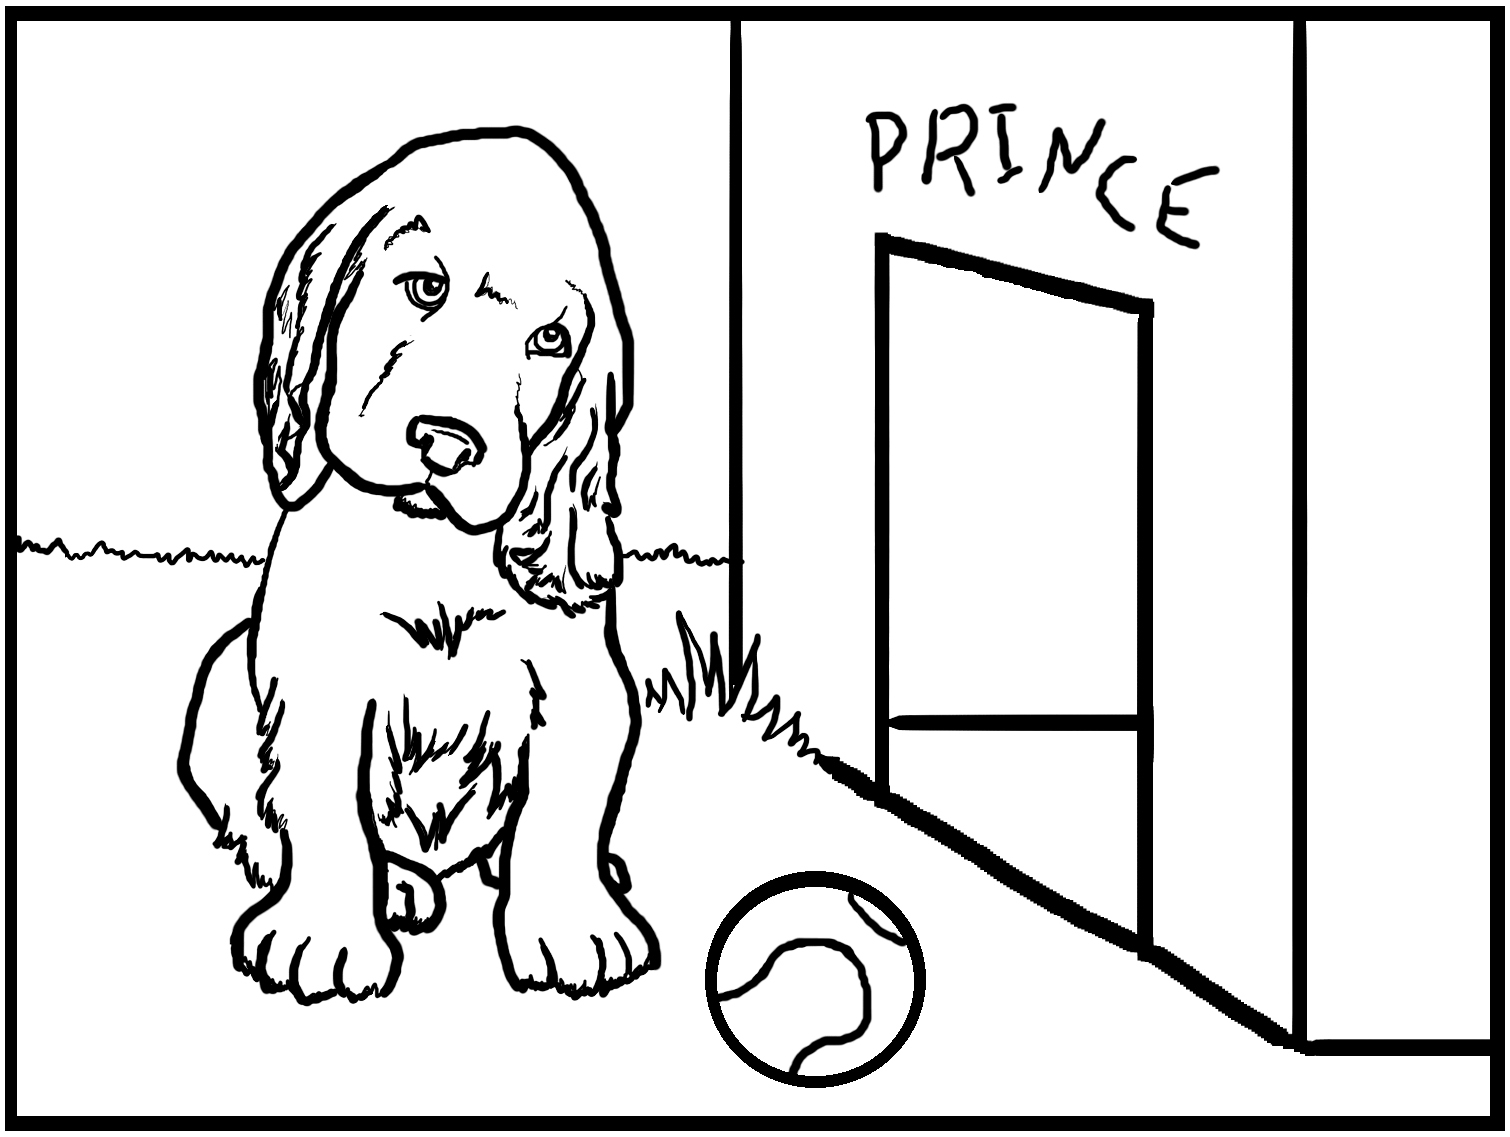 printable dog coloring pages for kids - Kids Printable Color Pages